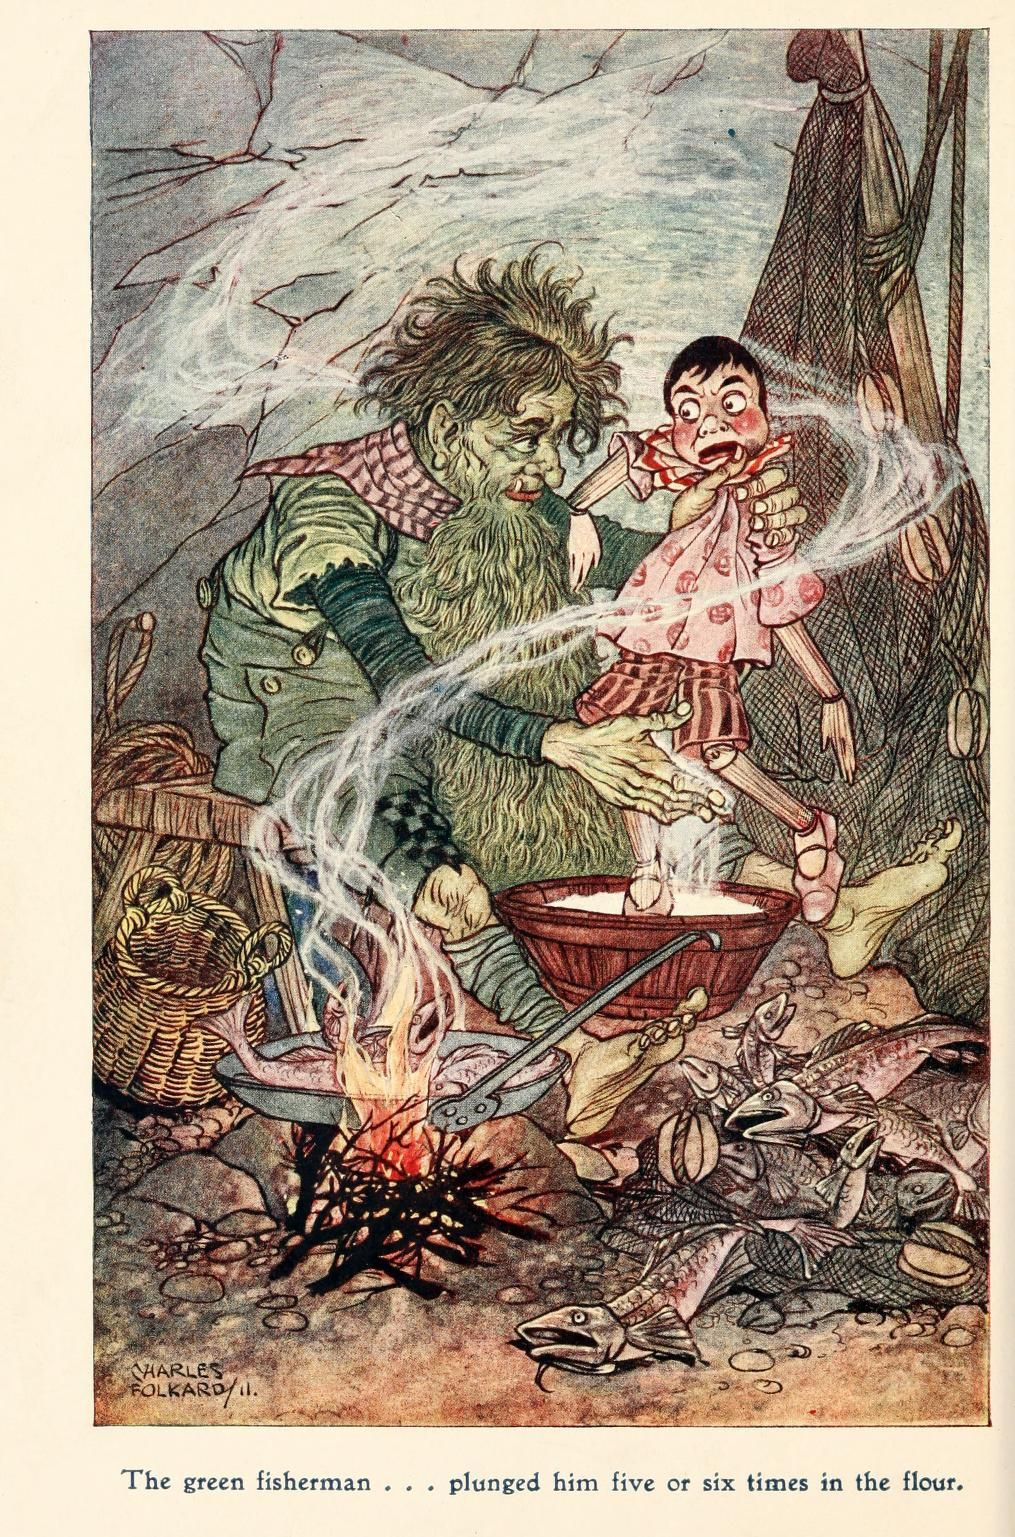 The green fisherman...plunged him five or six times in the flour - Pinocchio, The Tale of a Puppet by C. Collodi, 1911